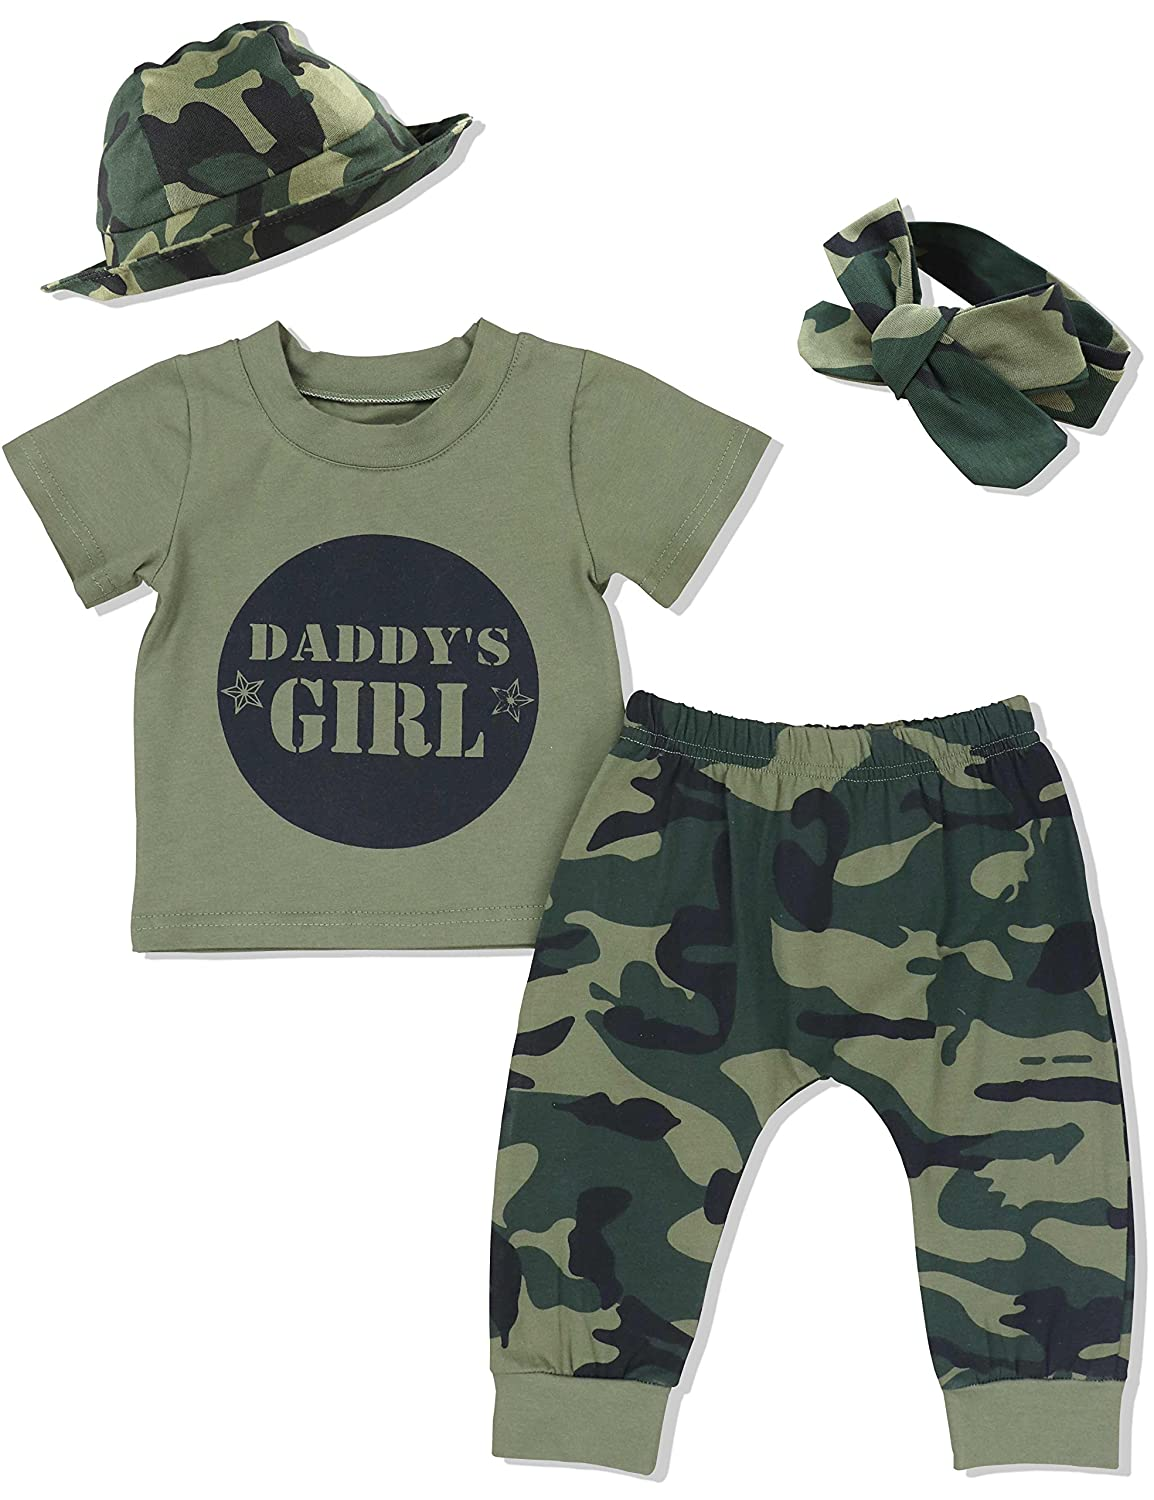 Clothing Sets Newborn Infant Baby Girls Summer Outfit Clothes Sleeveless Ruched T-shirt Tops Striped Shorts Cotton Summer Outfits 2pcs 0-18m Perfect In Workmanship Girls' Baby Clothing